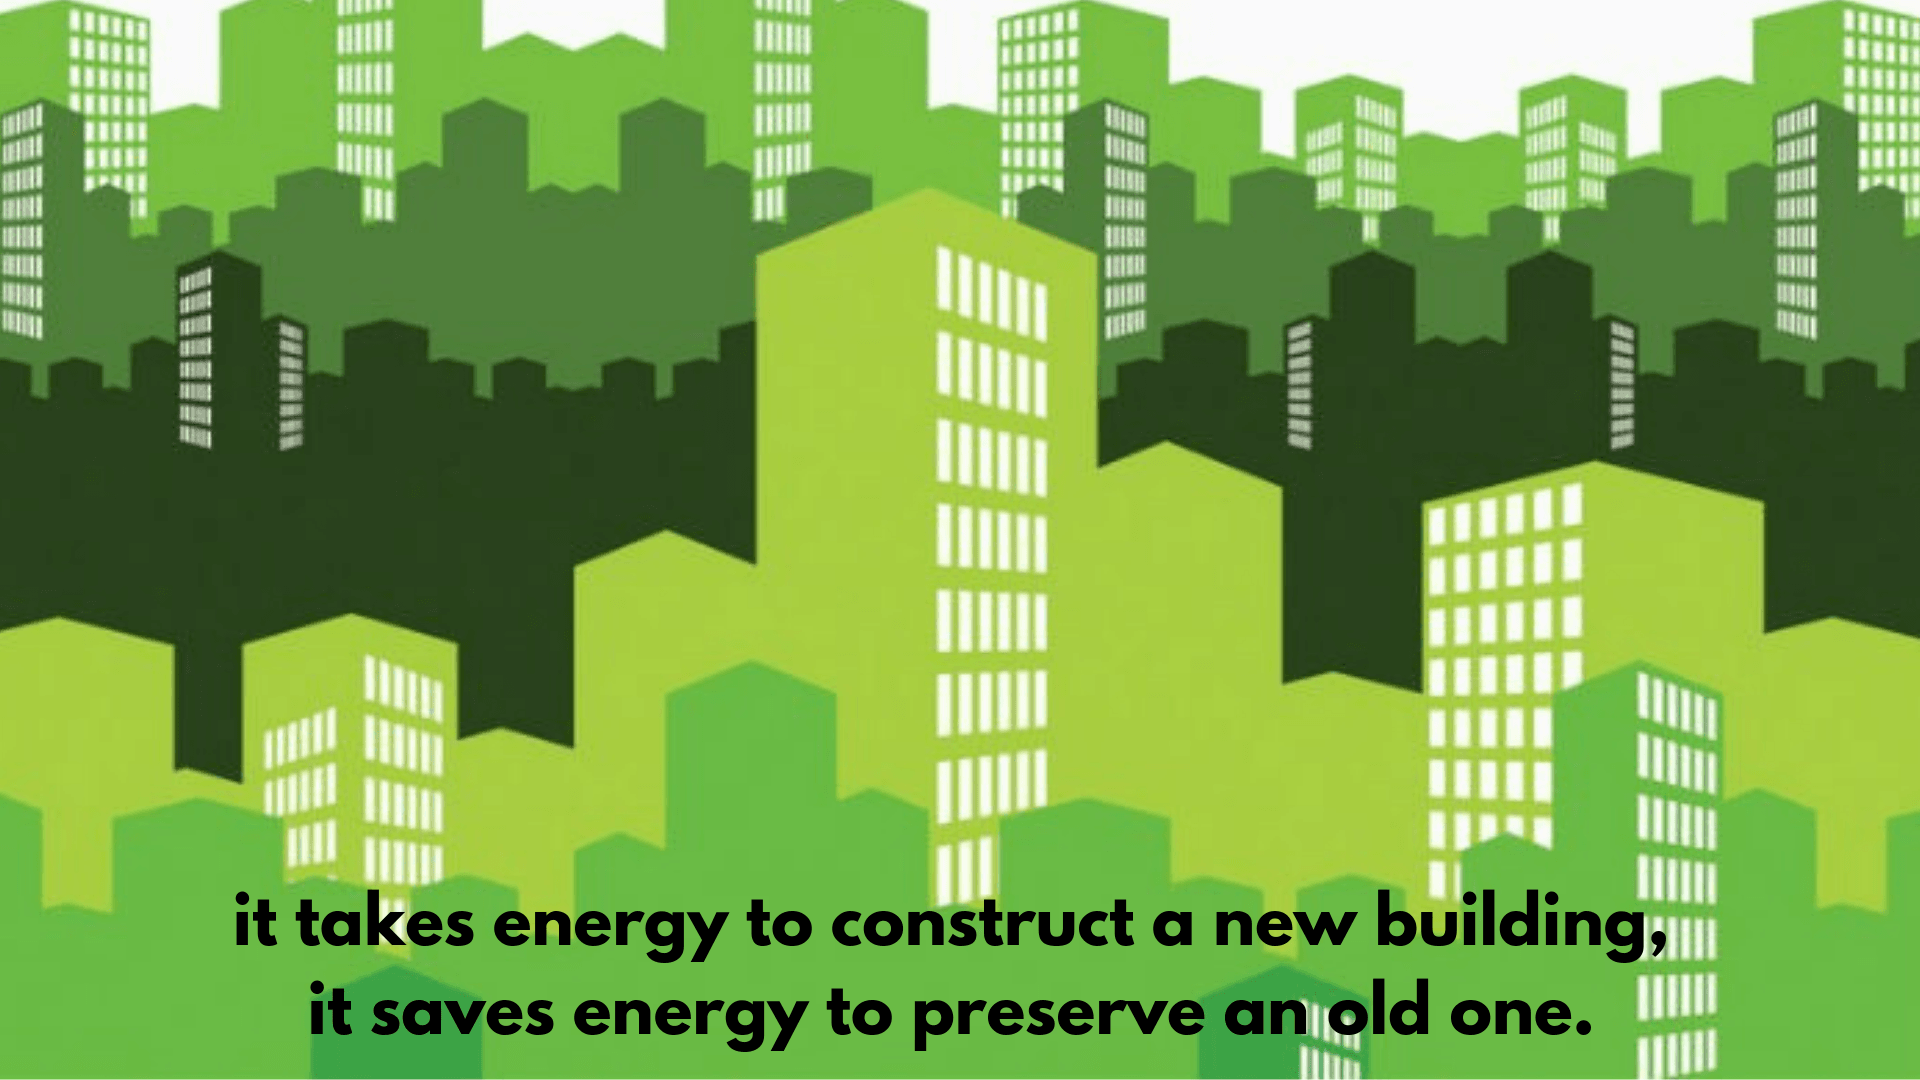 it takes energy to construct a new building, it saves energy to preserve an old one. (1)